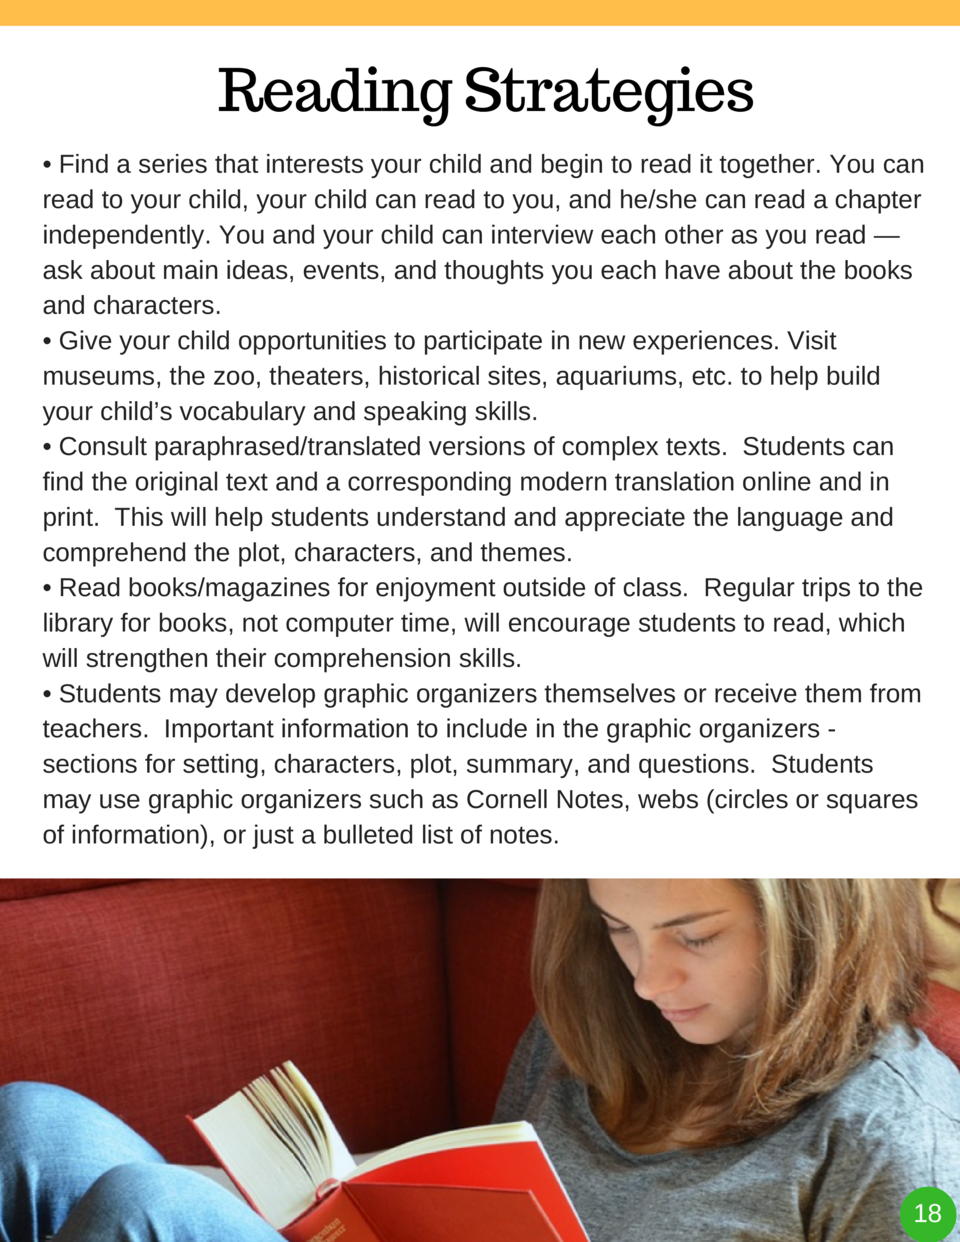 Reading Strategies     Find a series that interests your child and begin to read it together. You can read to your child, ...